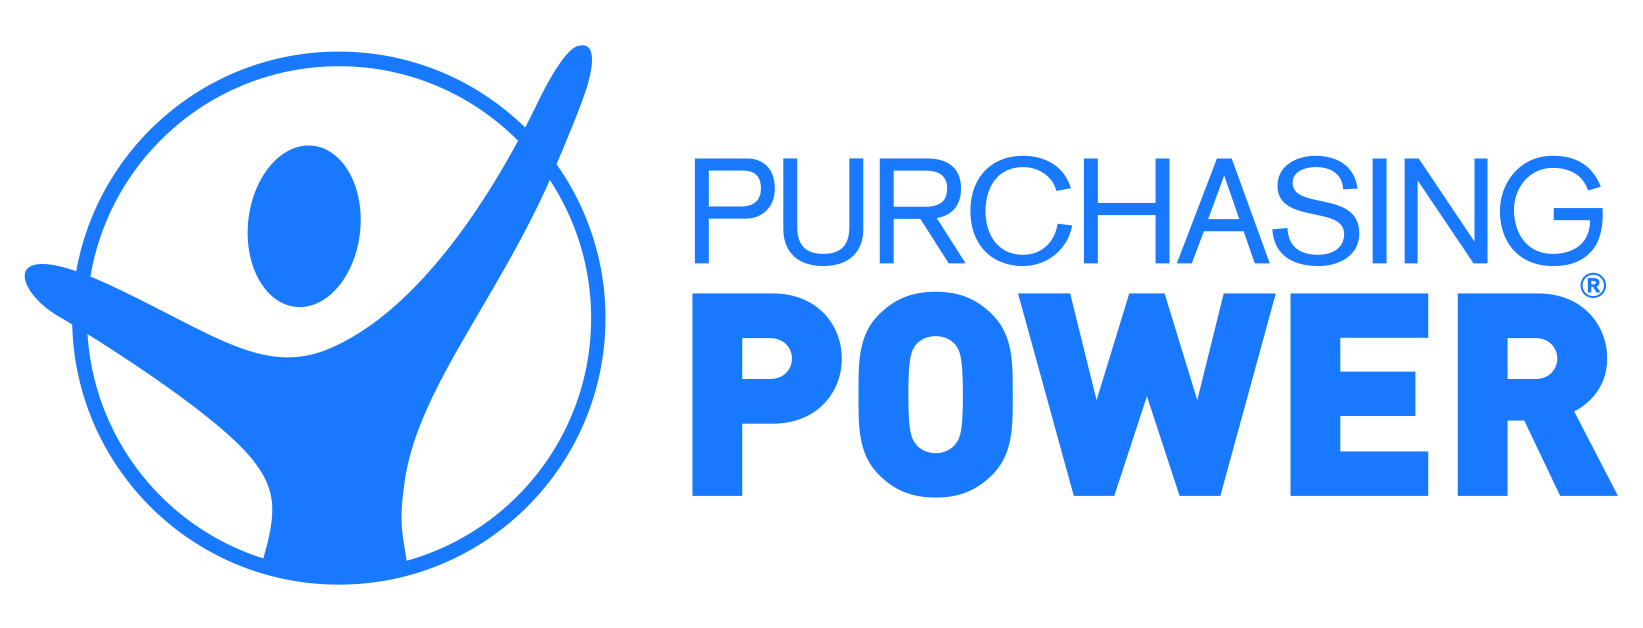 PURCHSING POWER